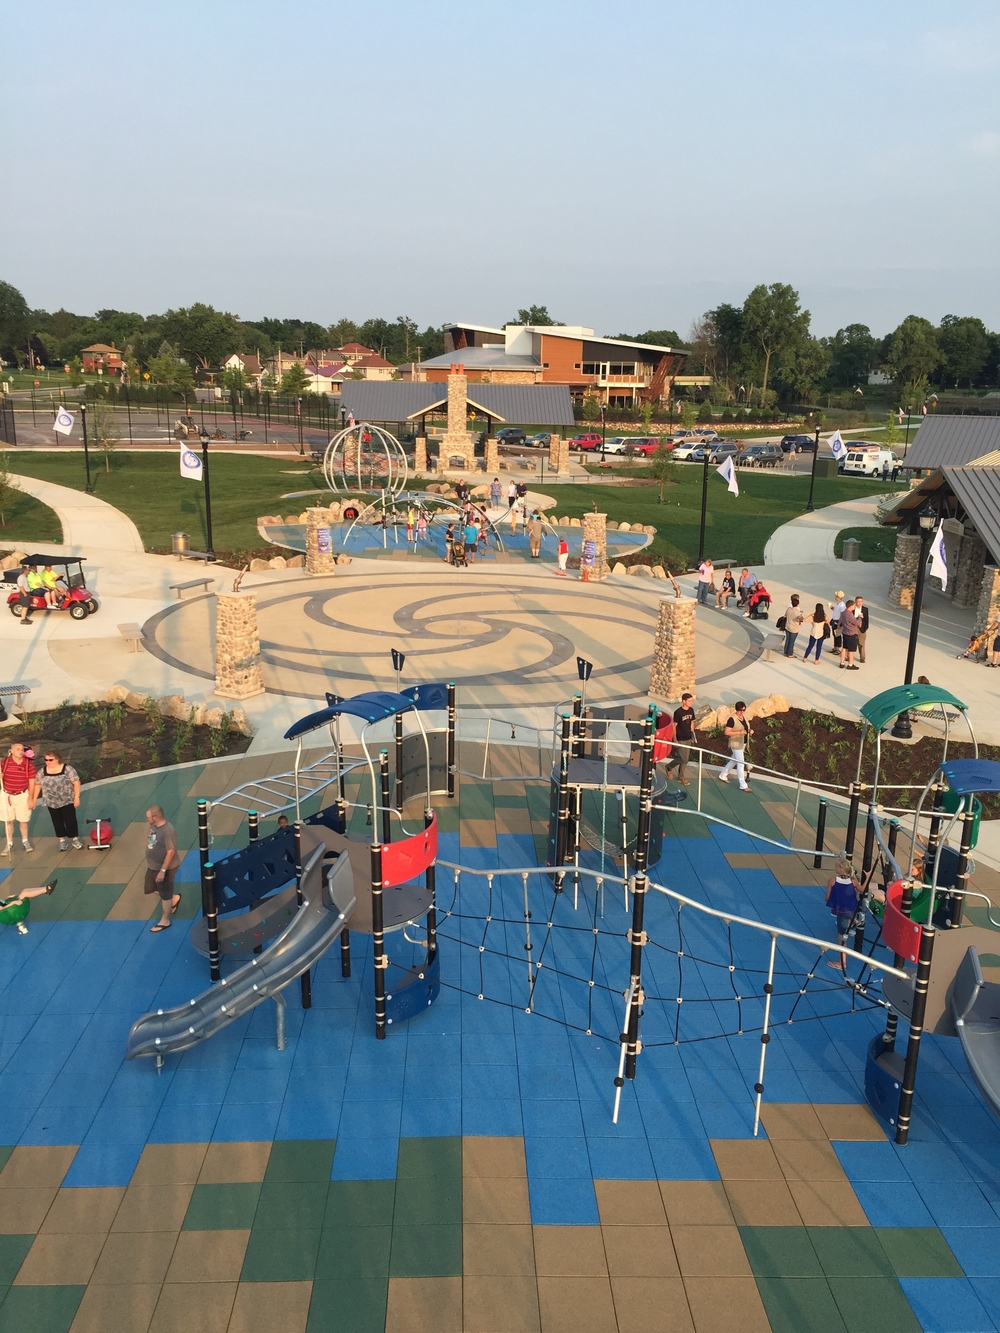 Overview of playgrounds and water fountain